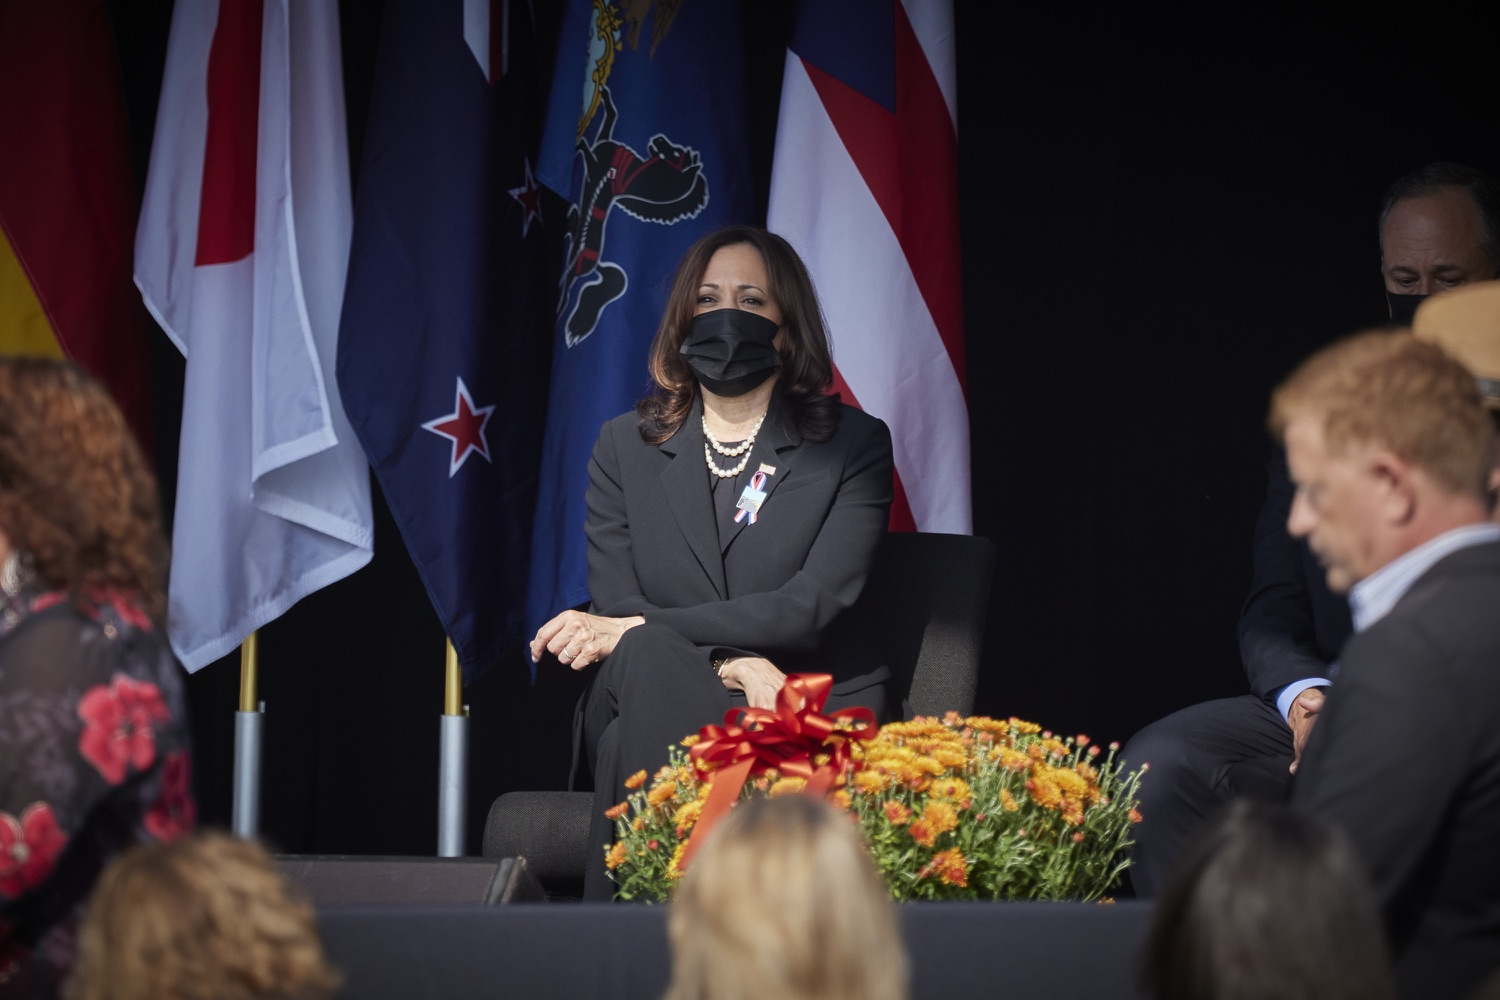 """<a href=""""https://filesource.wostreaming.net/commonwealthofpa/photo/19117_gov_Flight_93_Memorial_dz_010_copy.jpg"""" target=""""_blank"""">⇣Download Photo<br></a>Vice President of the United States of America Kamala Harris on  stage at the Flight 93 National Memorial for the 20th annual September 11 observance.  Today, Governor Tom Wolf visited the Flight 93 National Memorial for the 20th annual September 11 observance. Gov. Wolf joined families and guests to honor the passengers and crew of Flight 93. Flight 93 National Memorial, Shanksville, PA - September 11, 2021"""